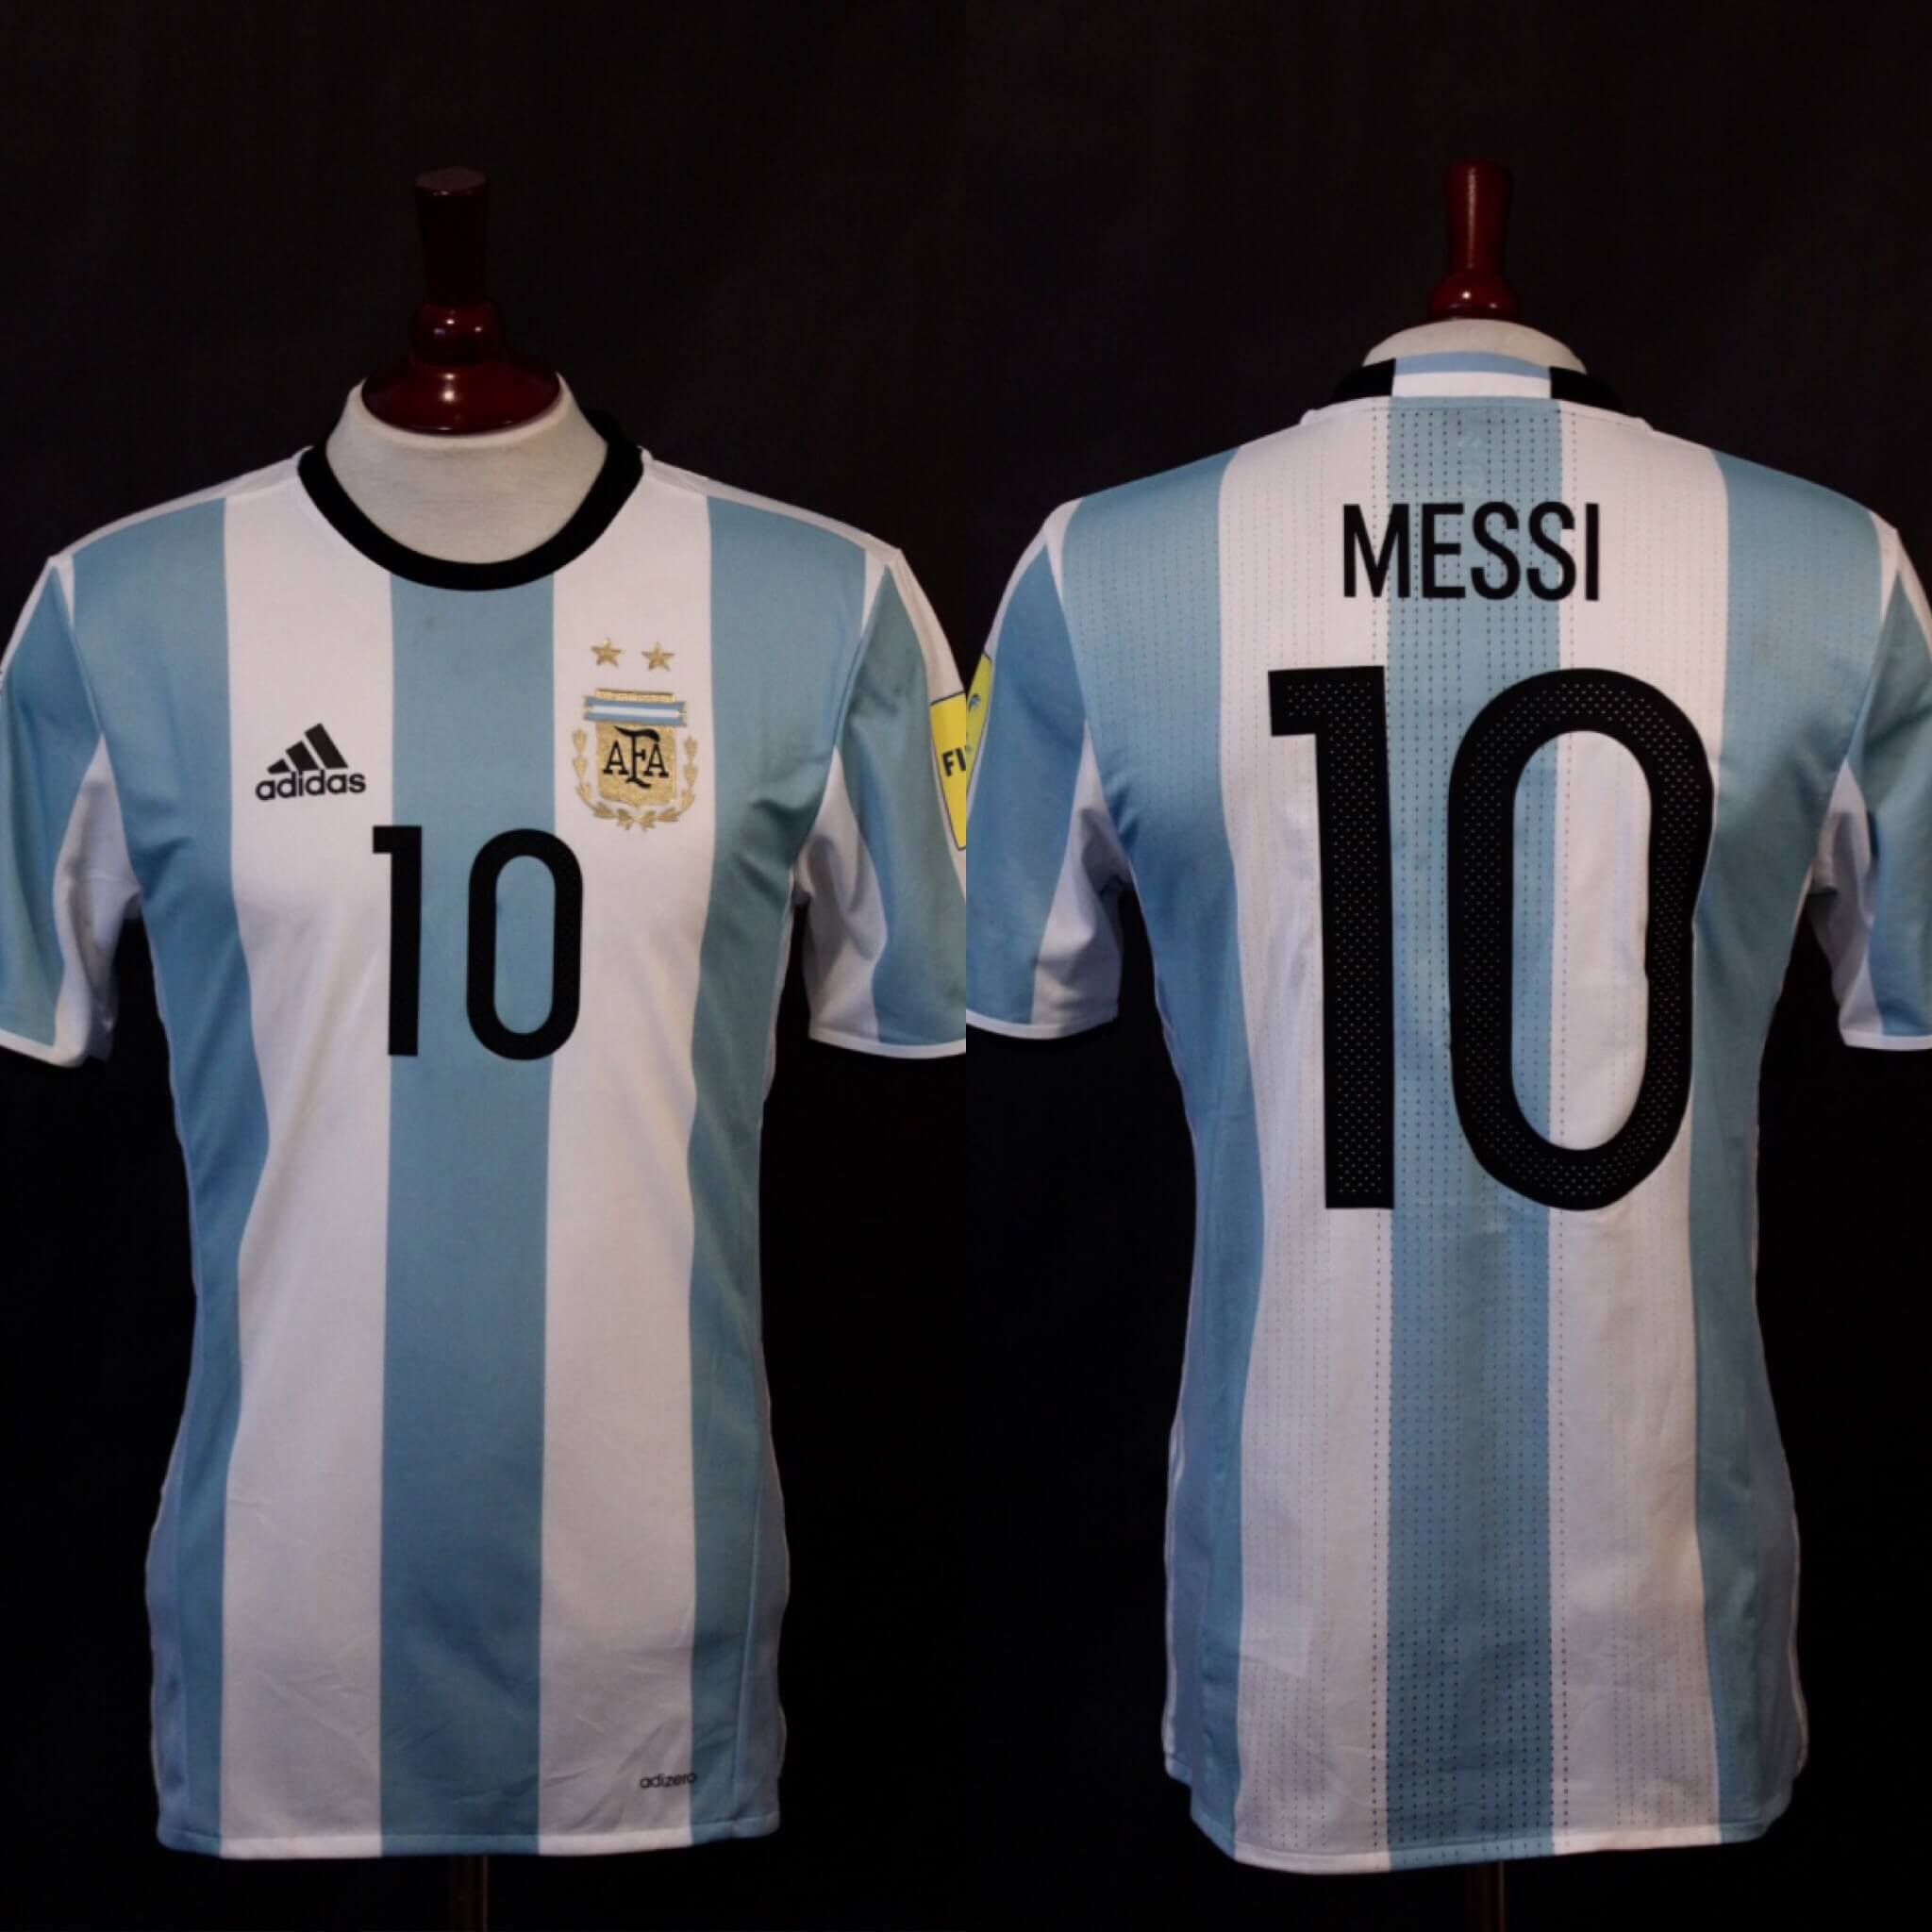 e1d6cc0ba 2018 MESSI Argentina Soccer Jersey on Storenvy